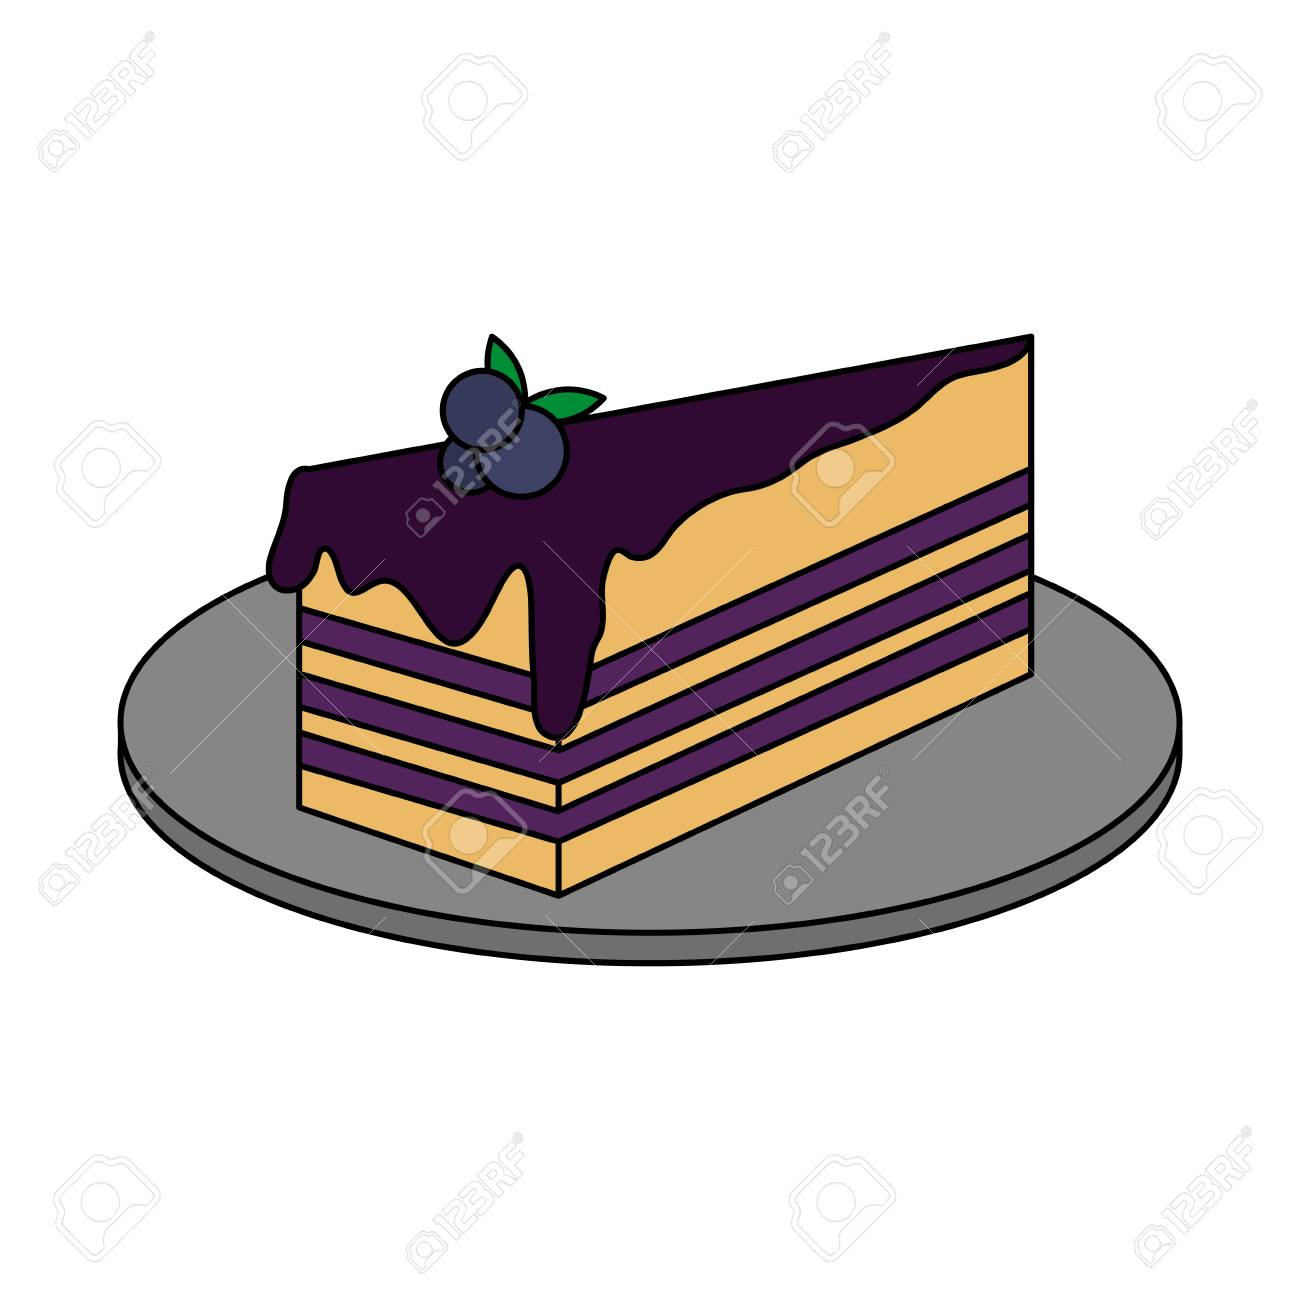 Blueberry Cake Pastry Icon Image Pastry Icon Image Vector